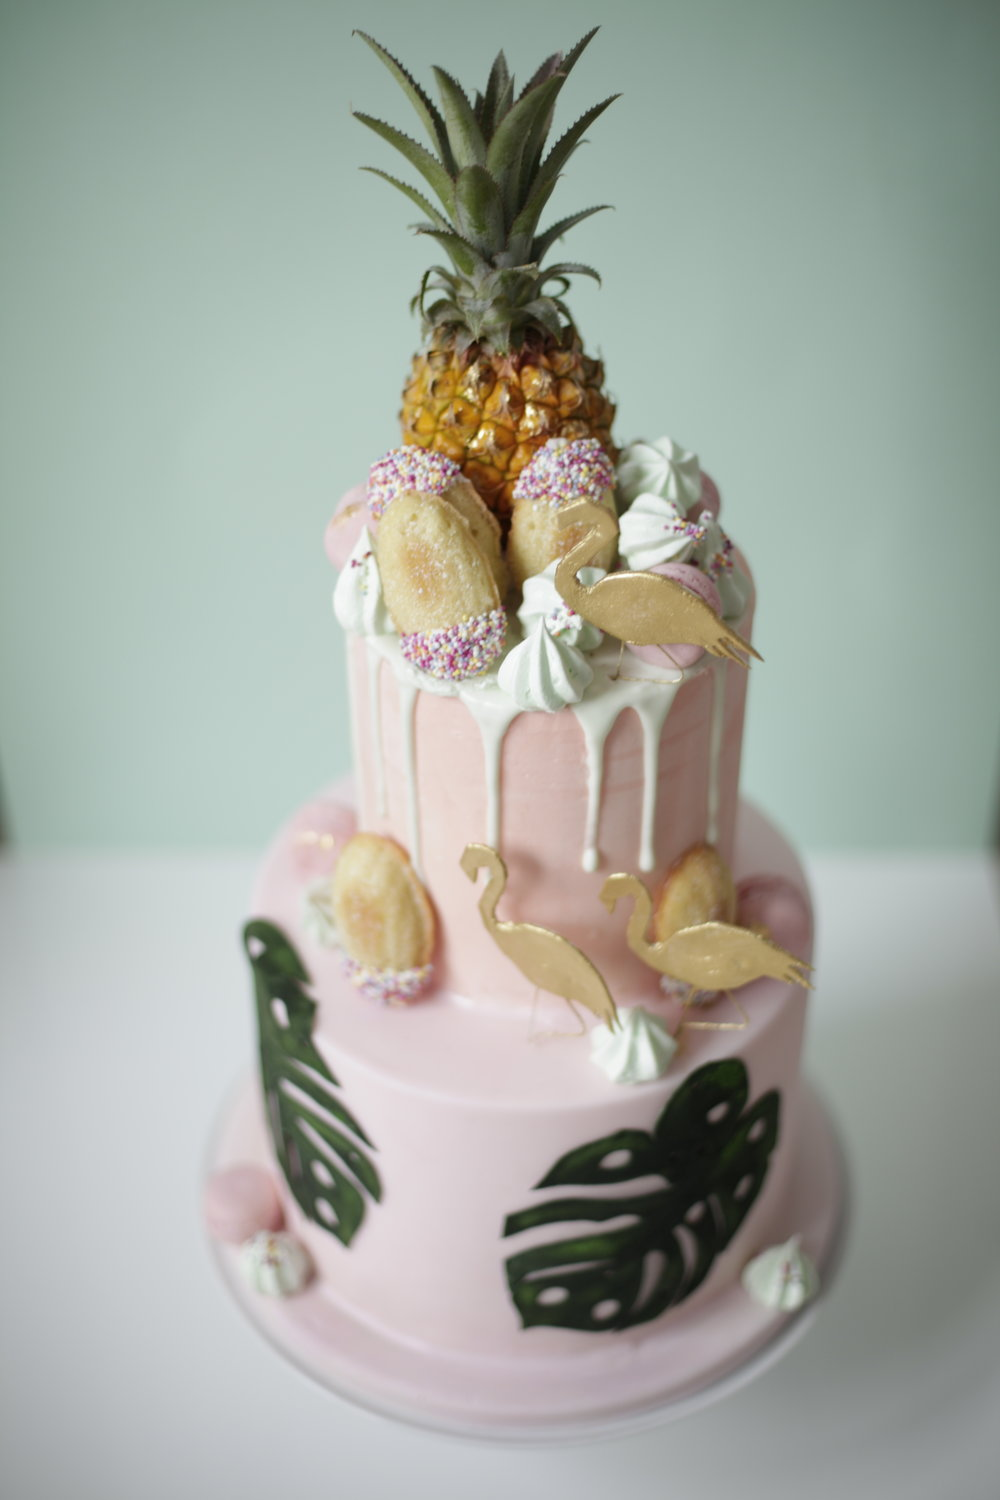 Wedding Cakes - Pineapple Wedding Cake